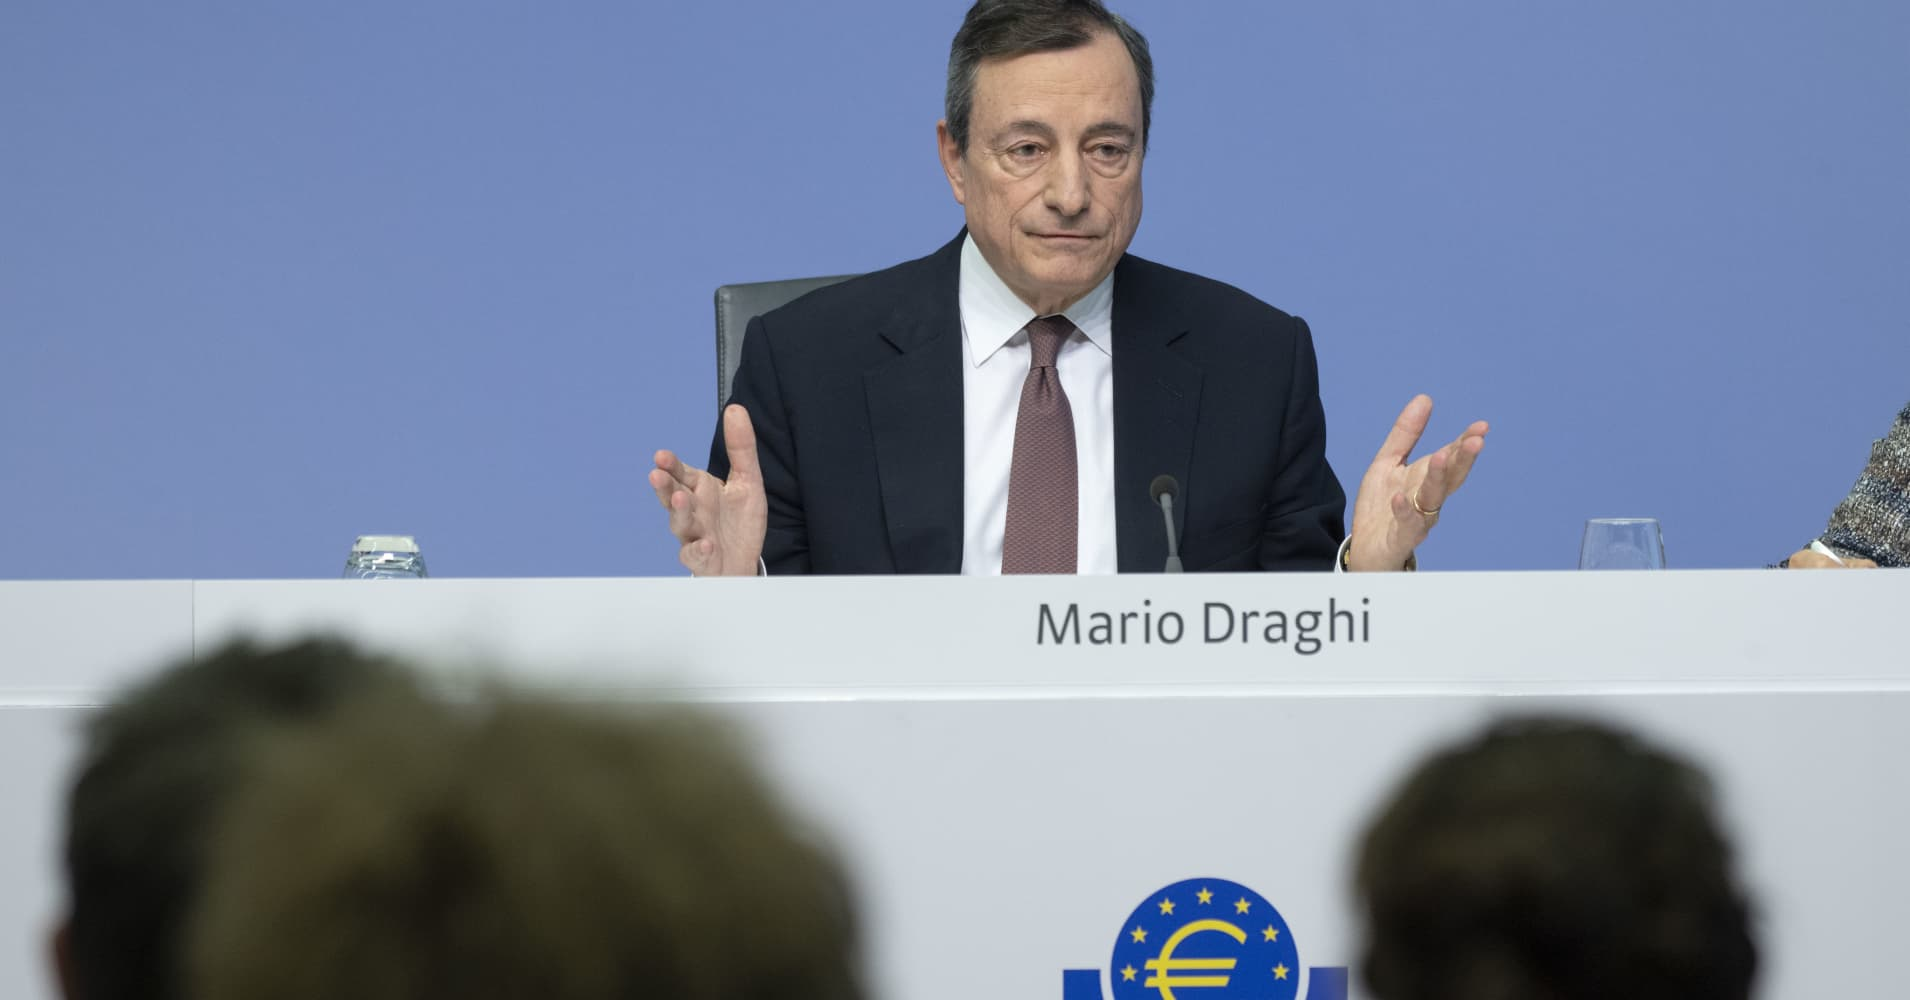 ECB in panic mode? Experts warn it'll take more than a central bank to help Europe recover